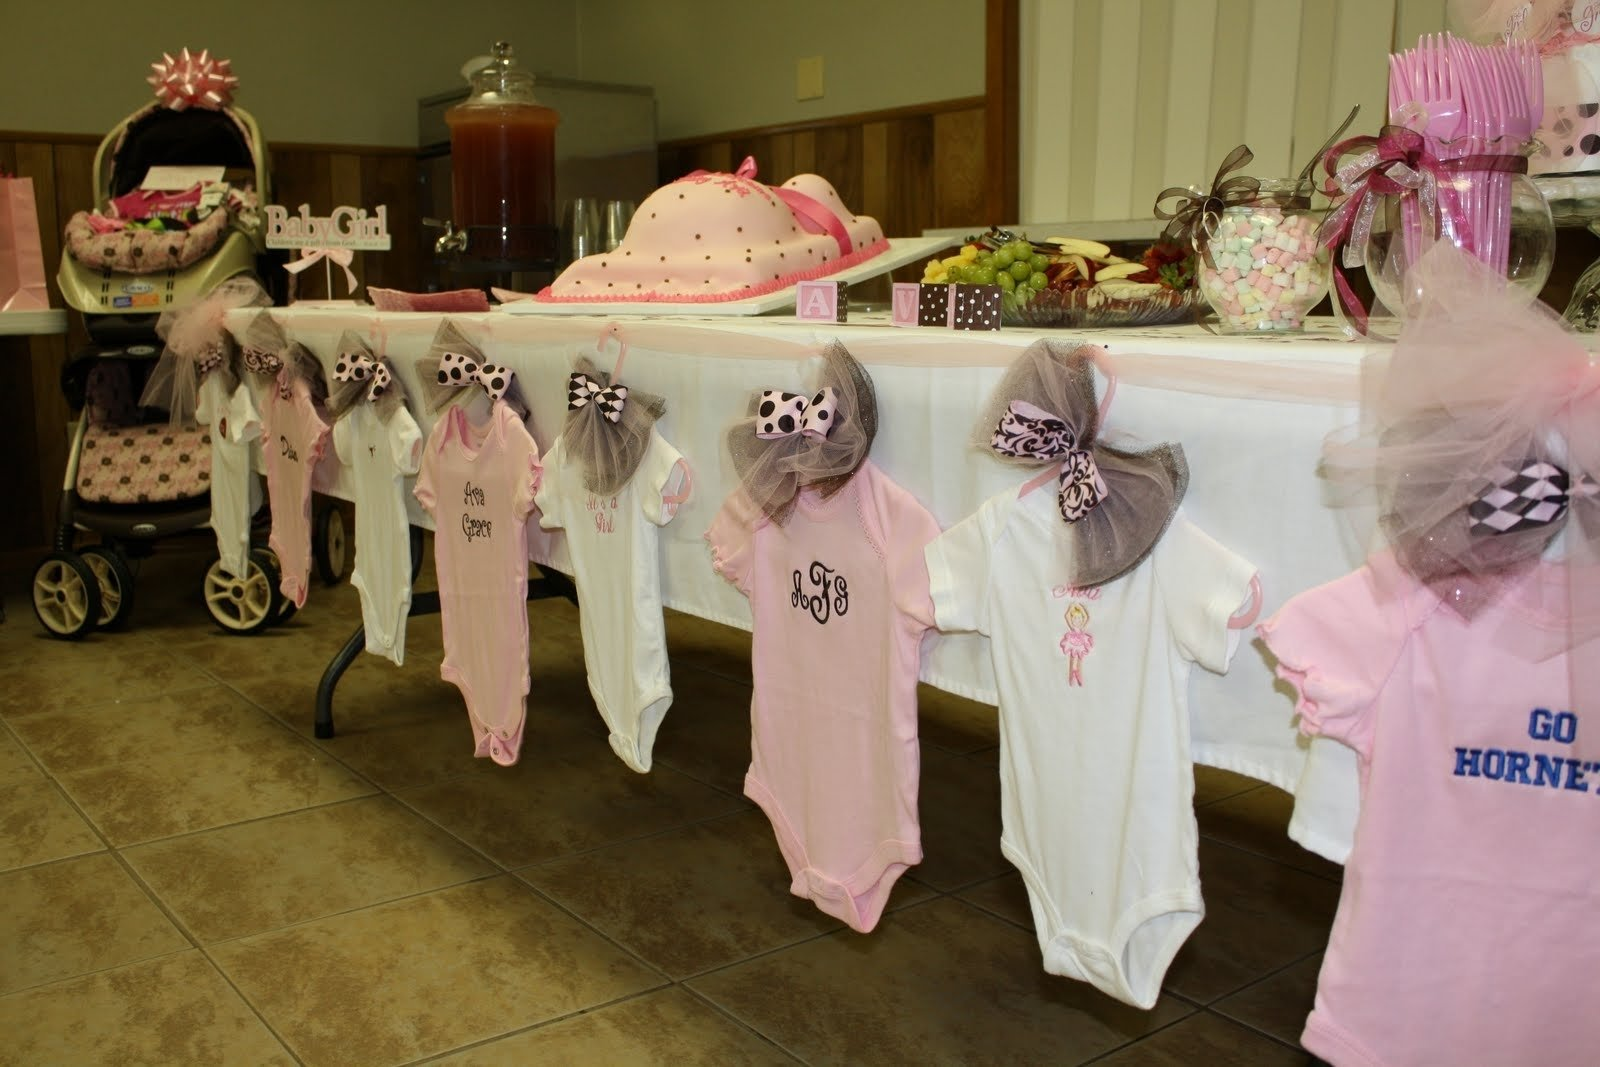 10 Unique Baby Shower Girl Decoration Ideas baby shower decorations ideas for a girl omega center ideas 2021